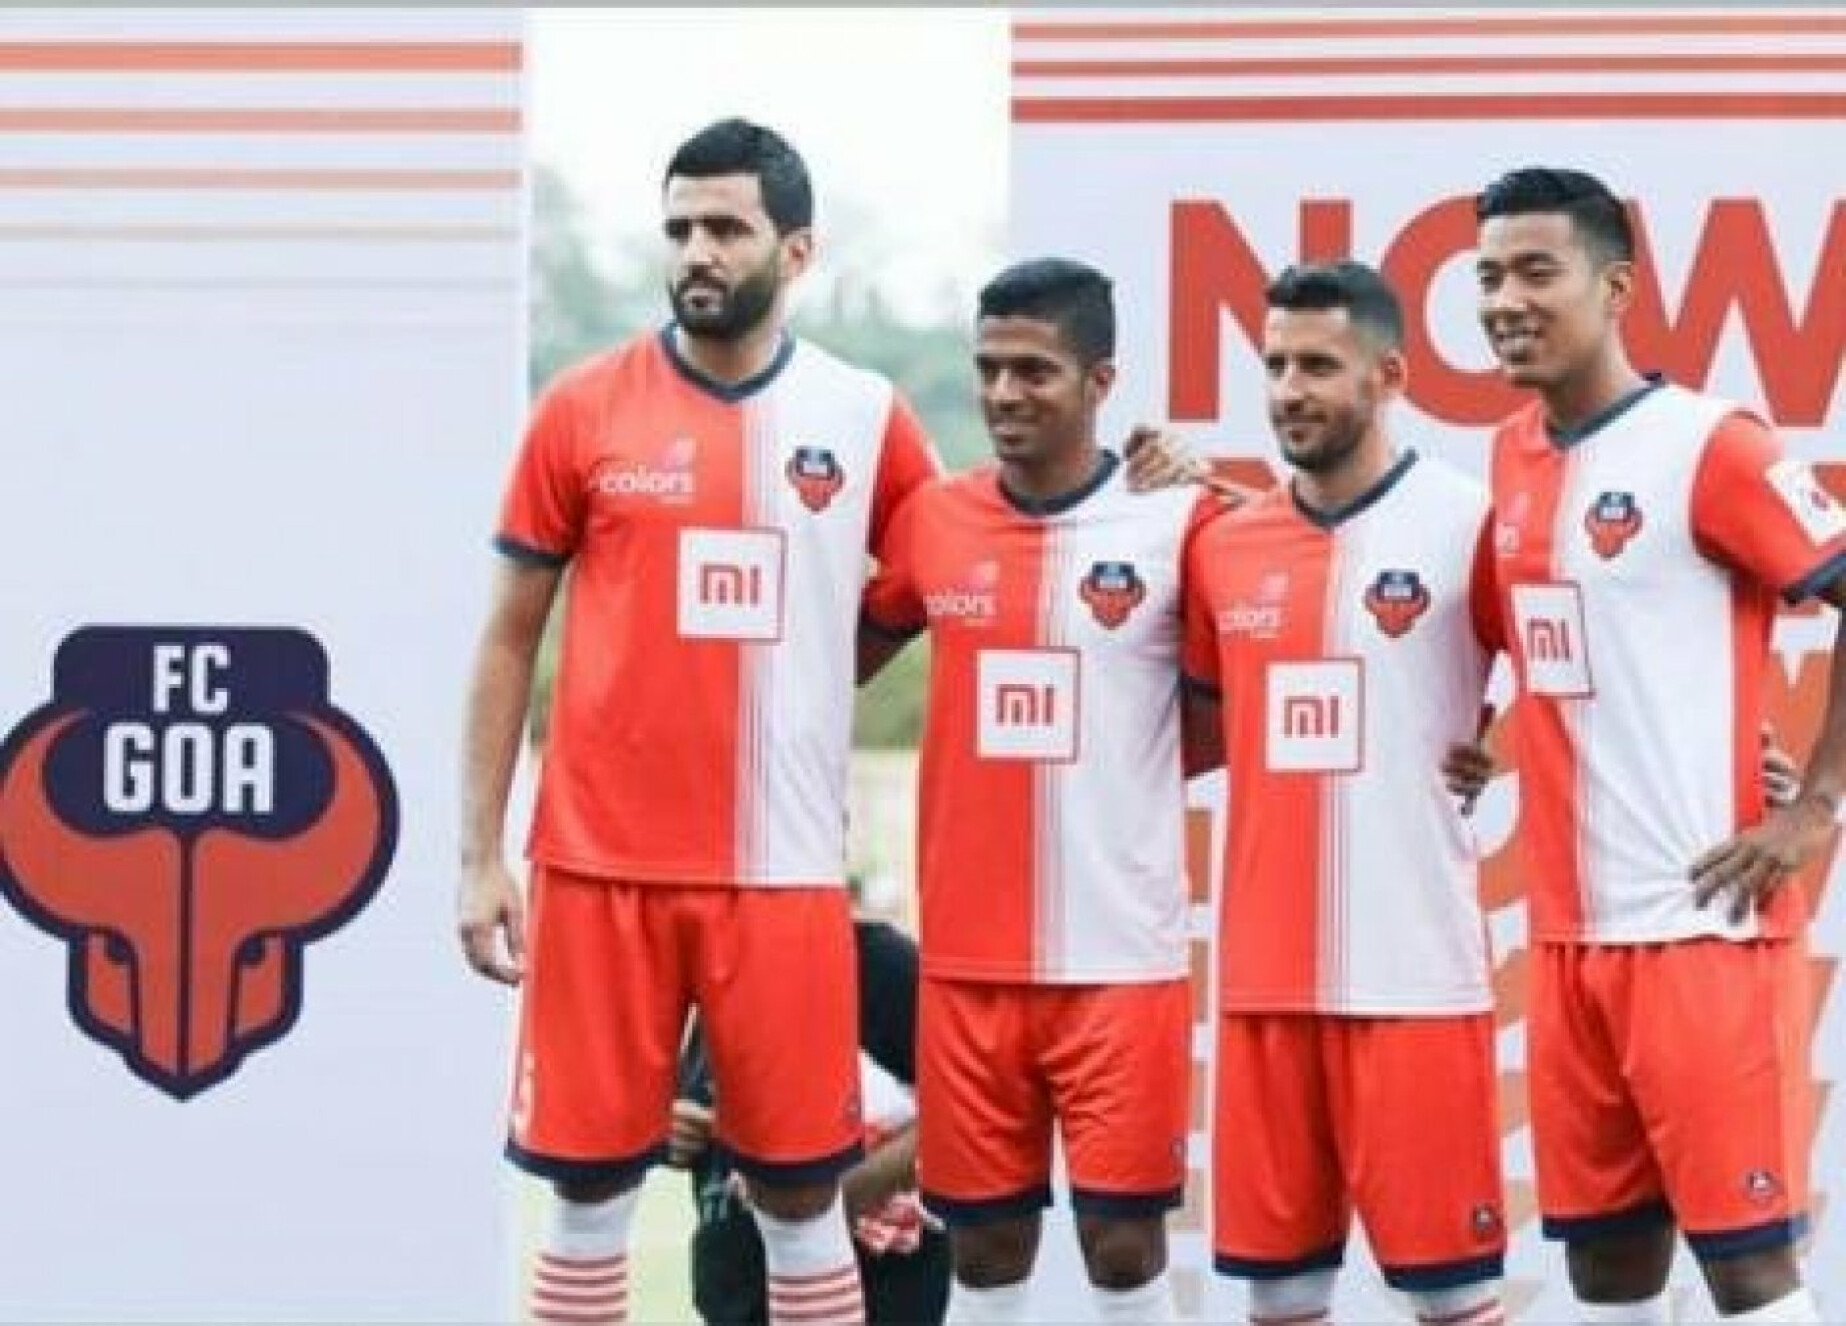 Chinese mobile giants Xiaomi roped in as FC Goa primary sponsor